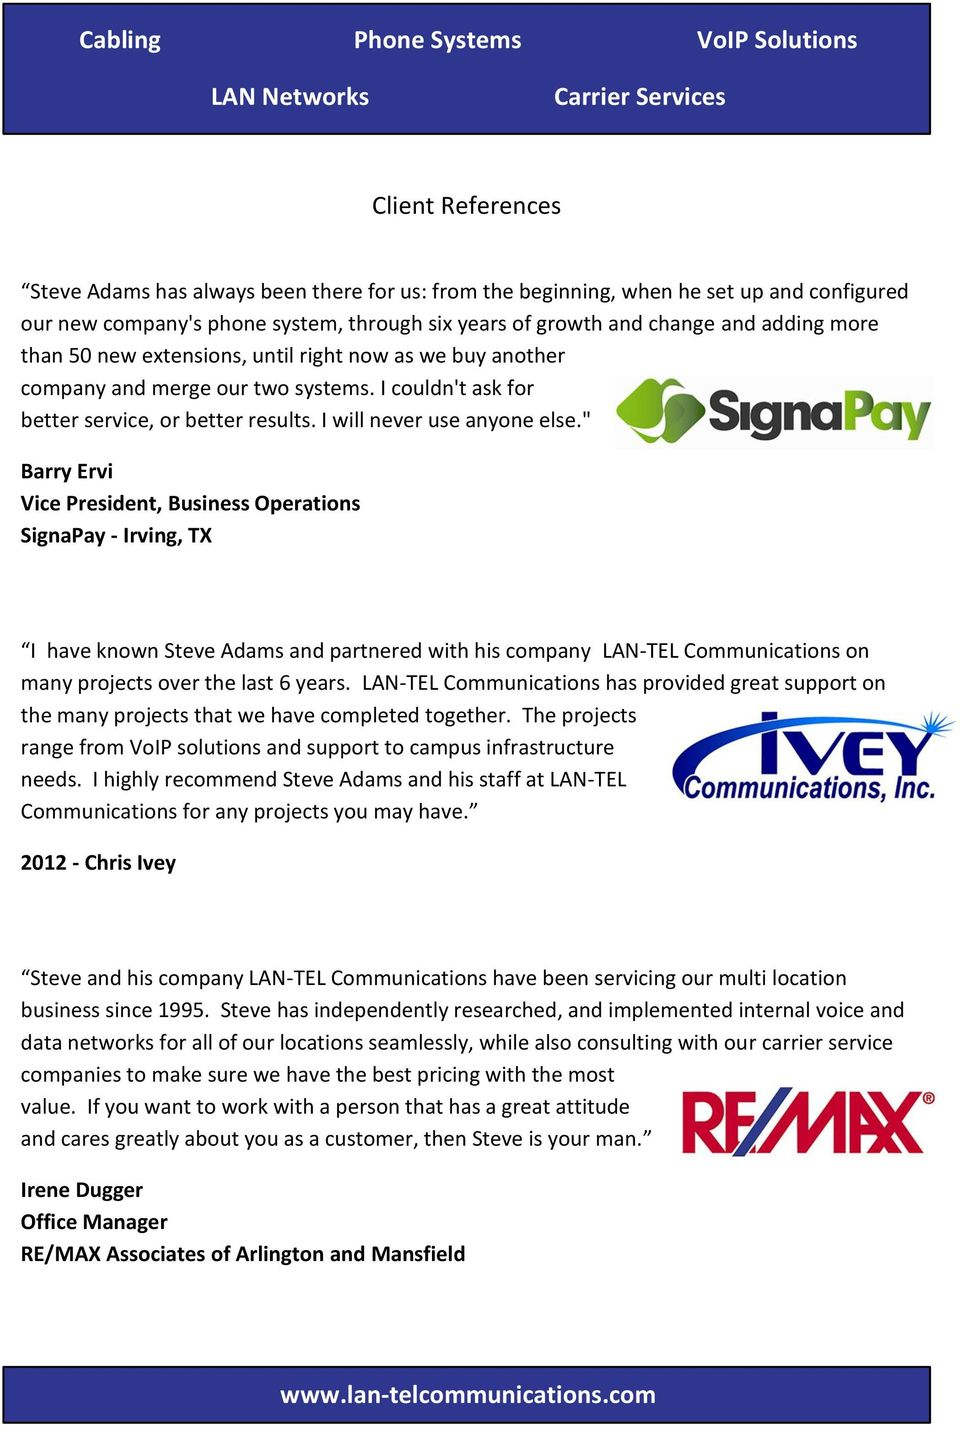 """ Barry Ervi Vice President, Business Operations SignaPay - Irving, TX I have known Steve Adams and partnered with his company LAN-TEL Communications on many projects over the last 6 years."